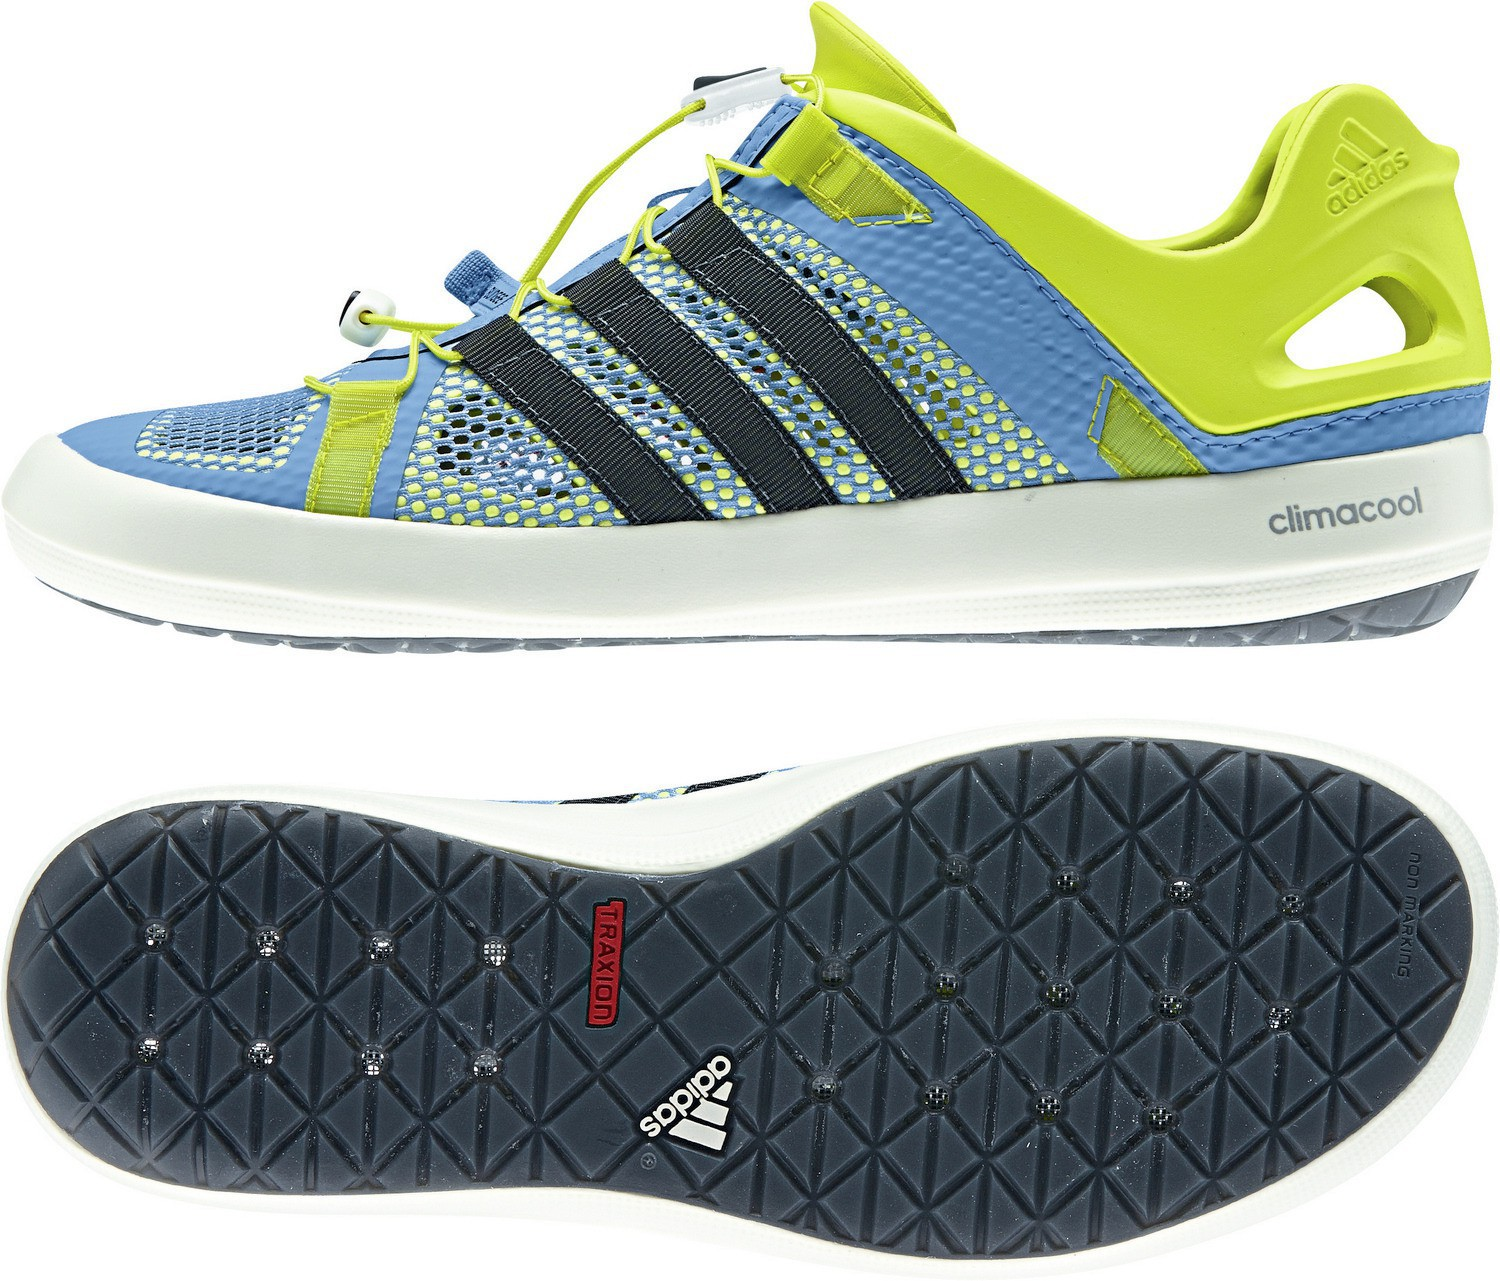 pas cher pour réduction c5347 2c3c8 Details about Adidas Climacool Boat Breeze B40632 Aqua Shoes Water Beach